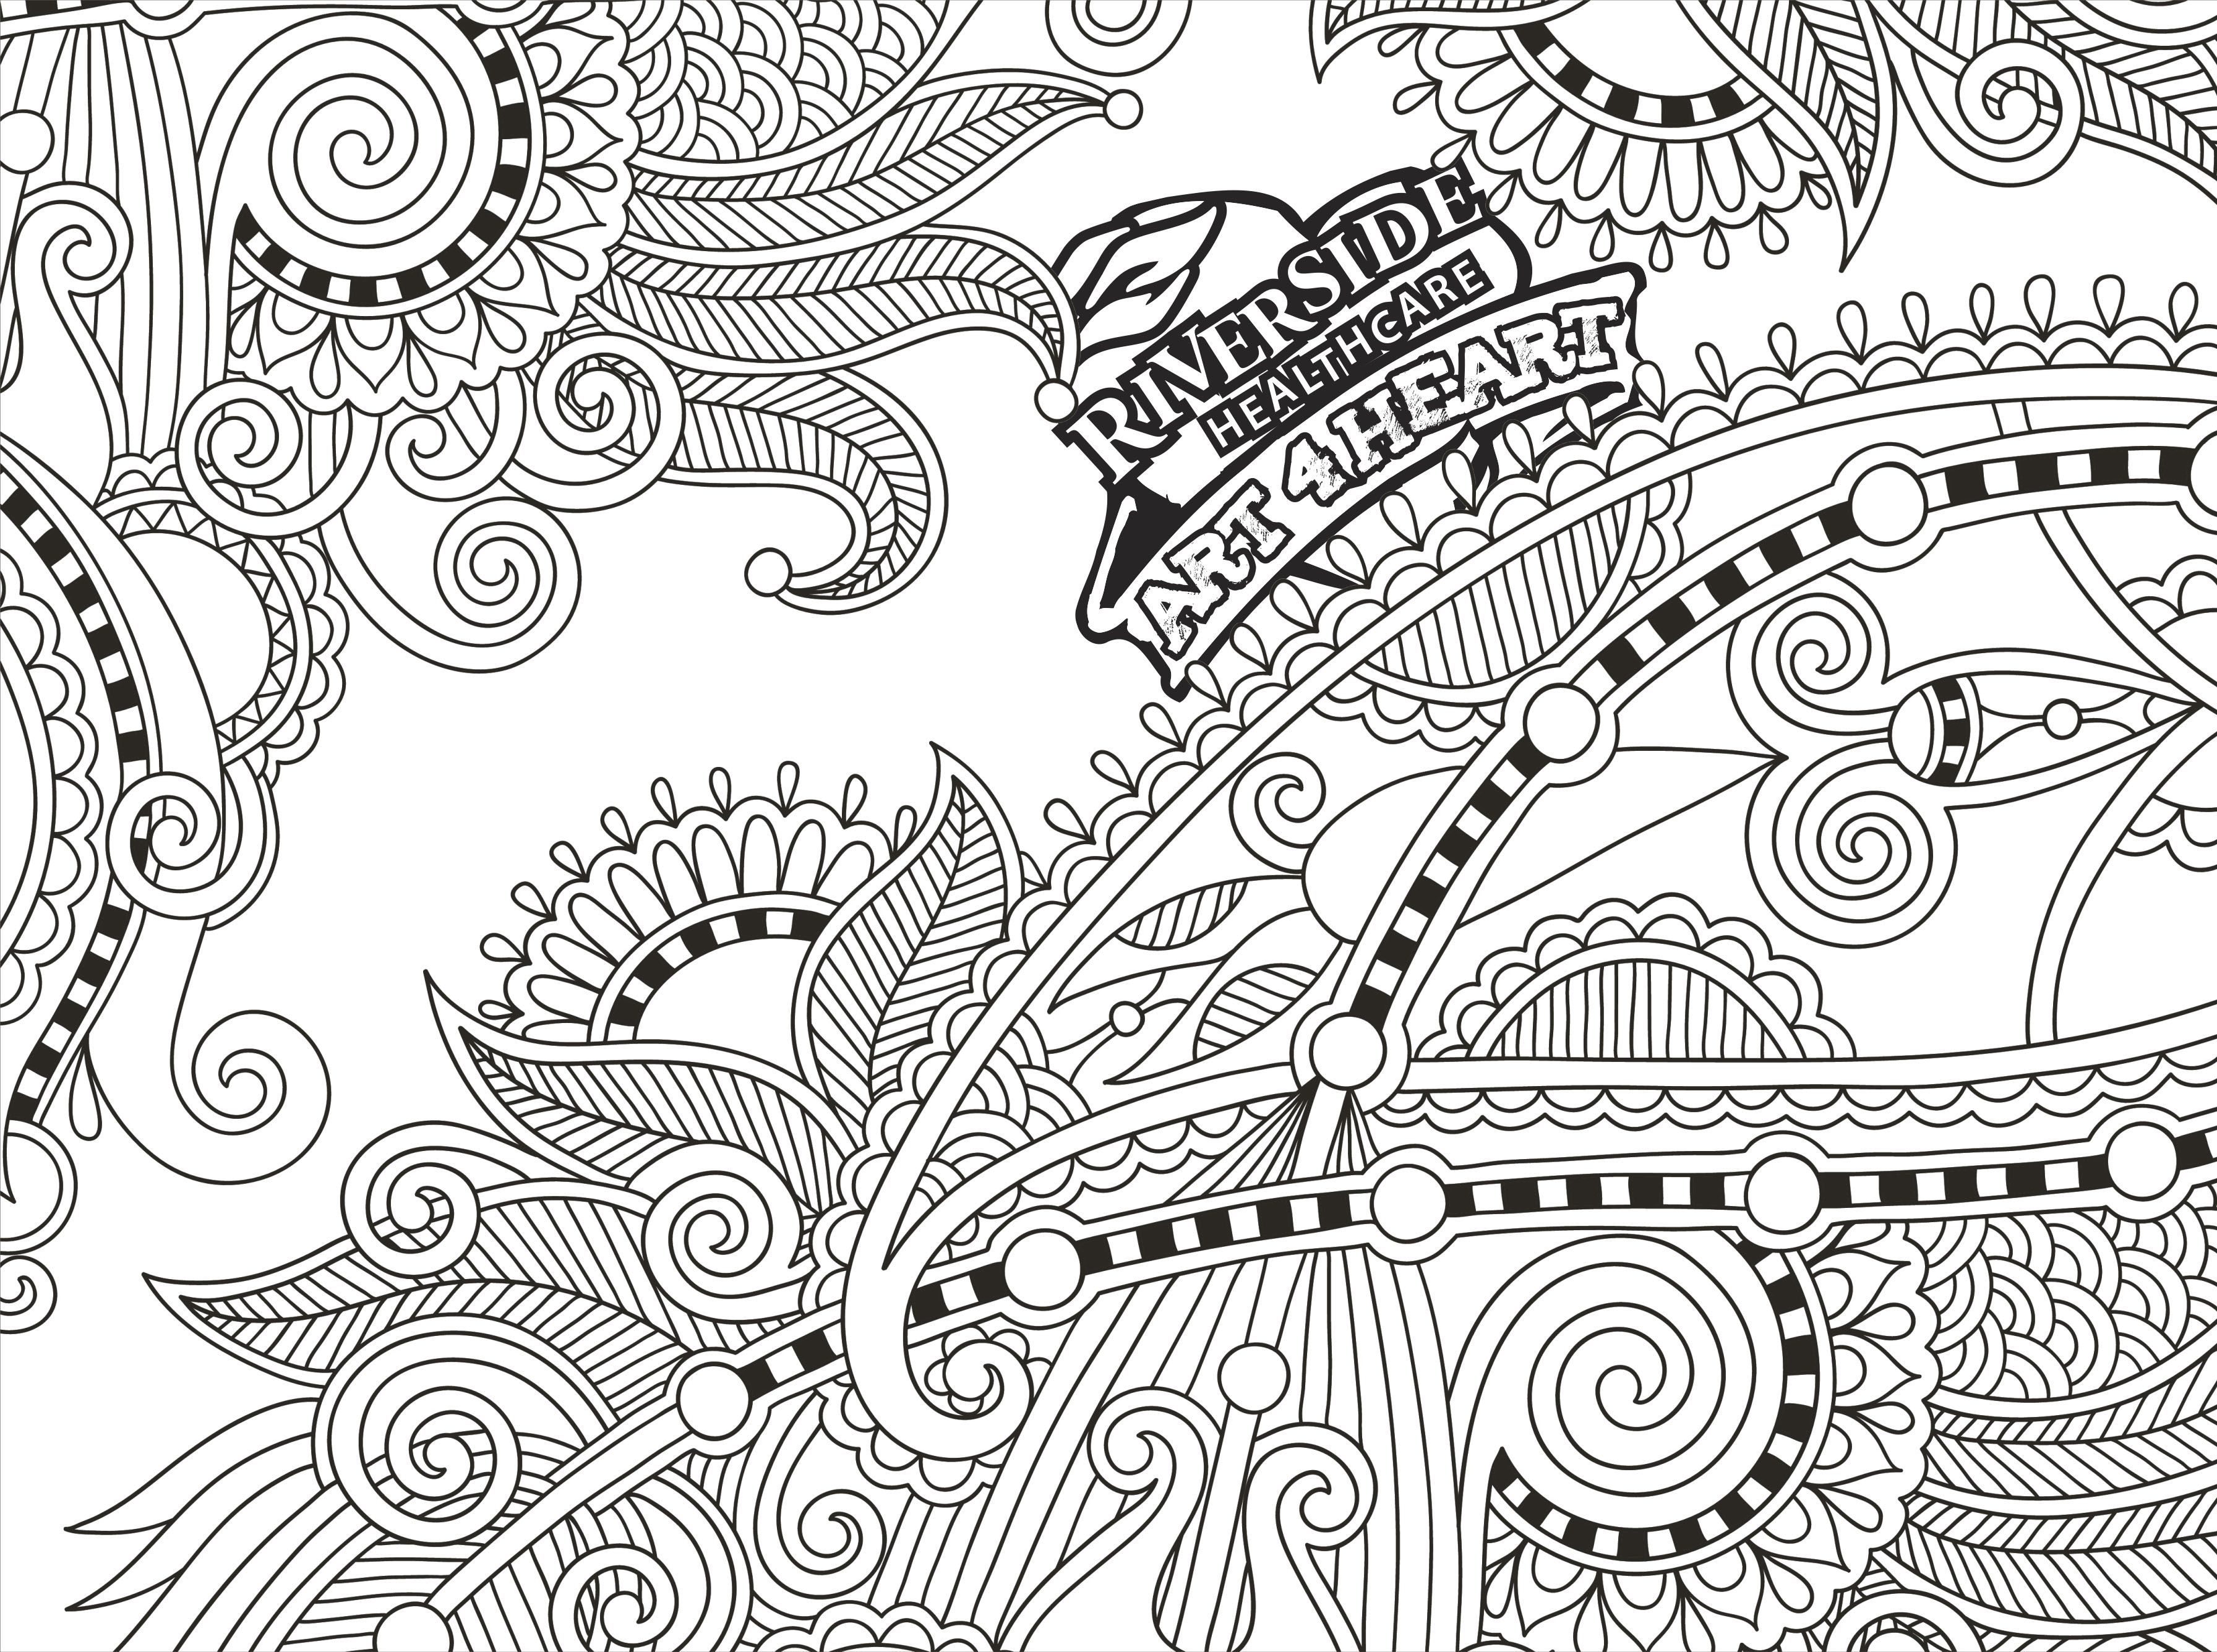 Printable Coloring Pages – HealthCurrents